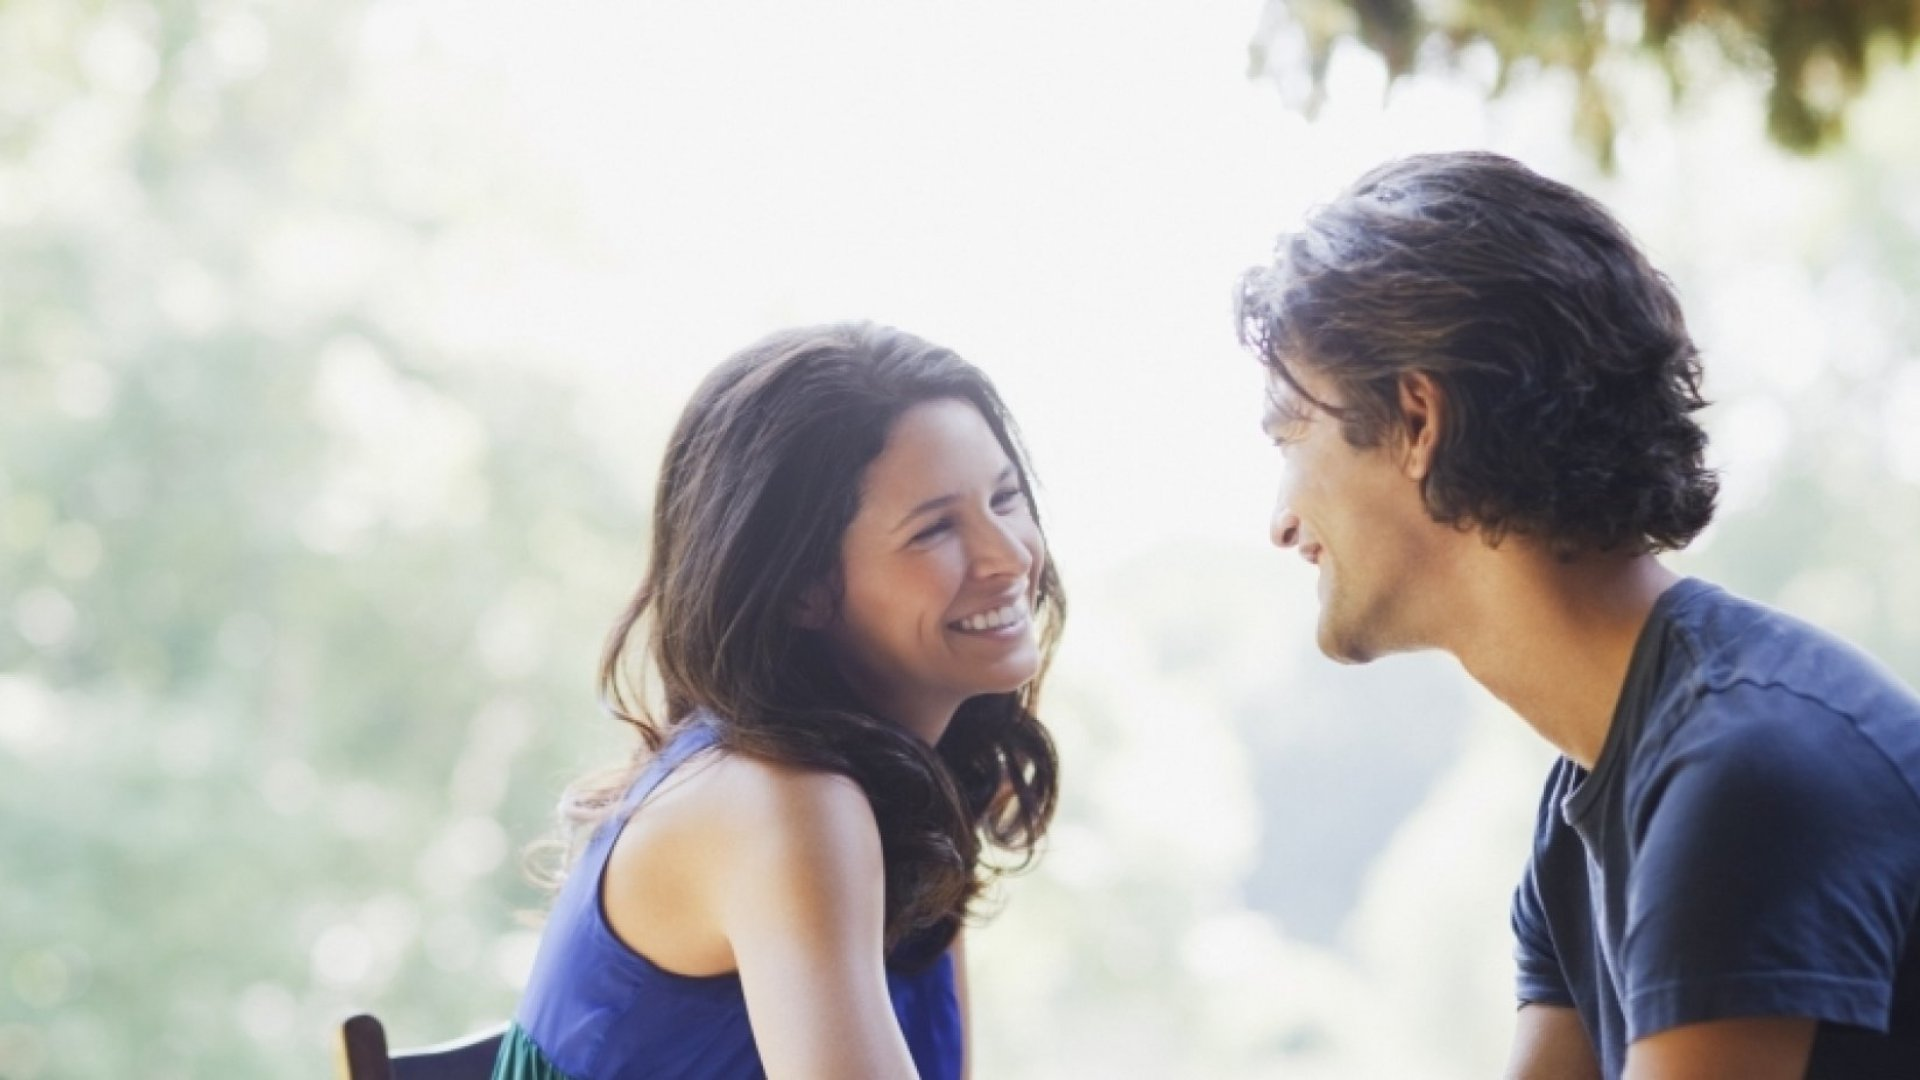 5 Hacks That Work for Both Online Marketing and Online Dating